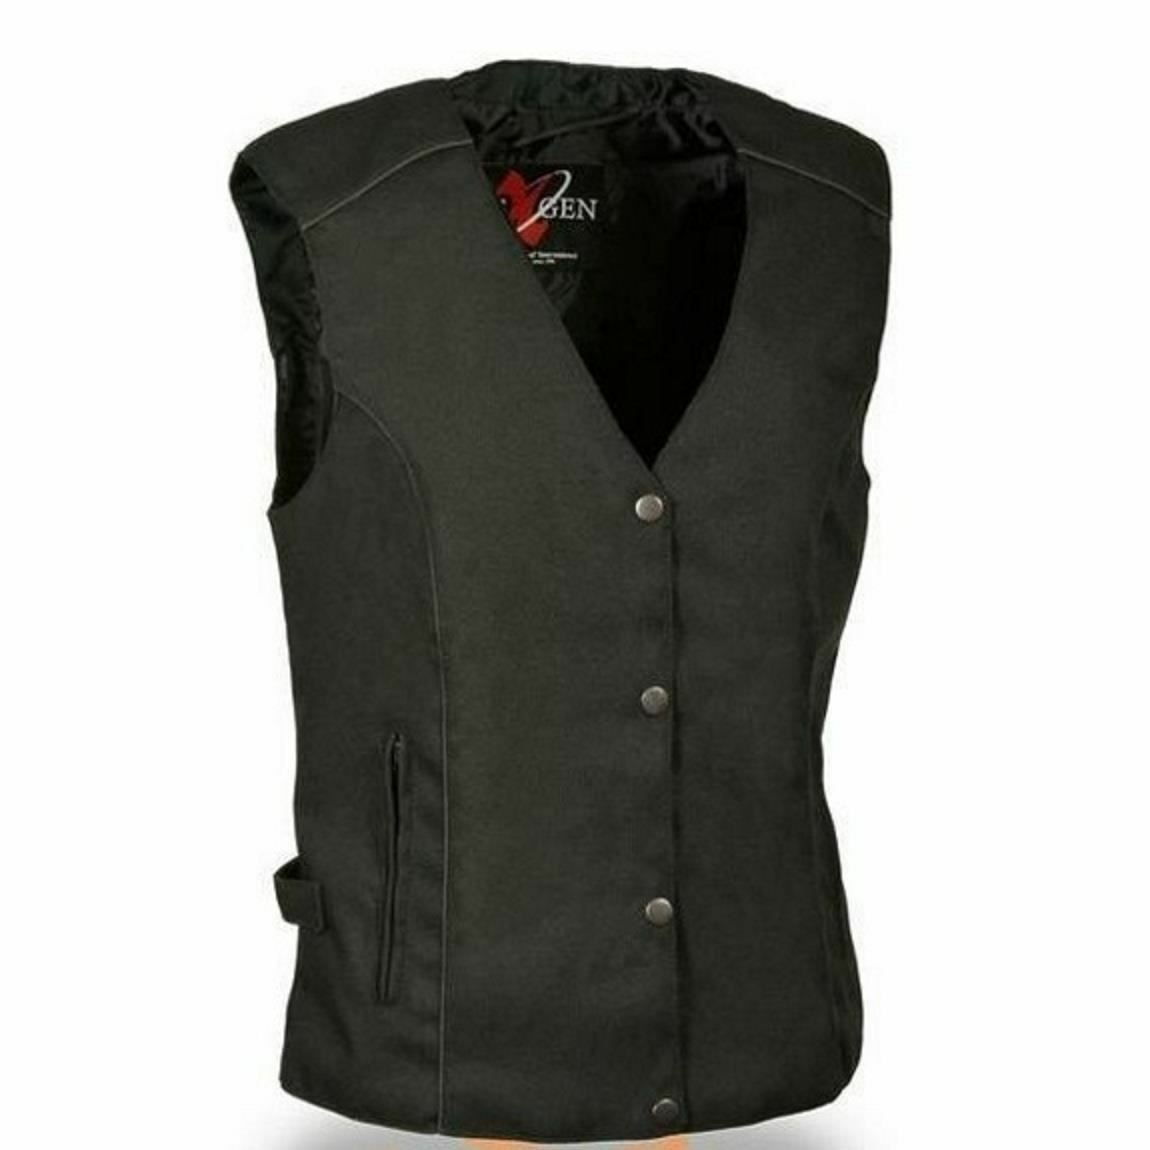 WOMENS MOTORCYCLE REFLECTIVE TEXTILE VEST w    STUDS & RED WINGS DESIGN - SA33 43fdf6